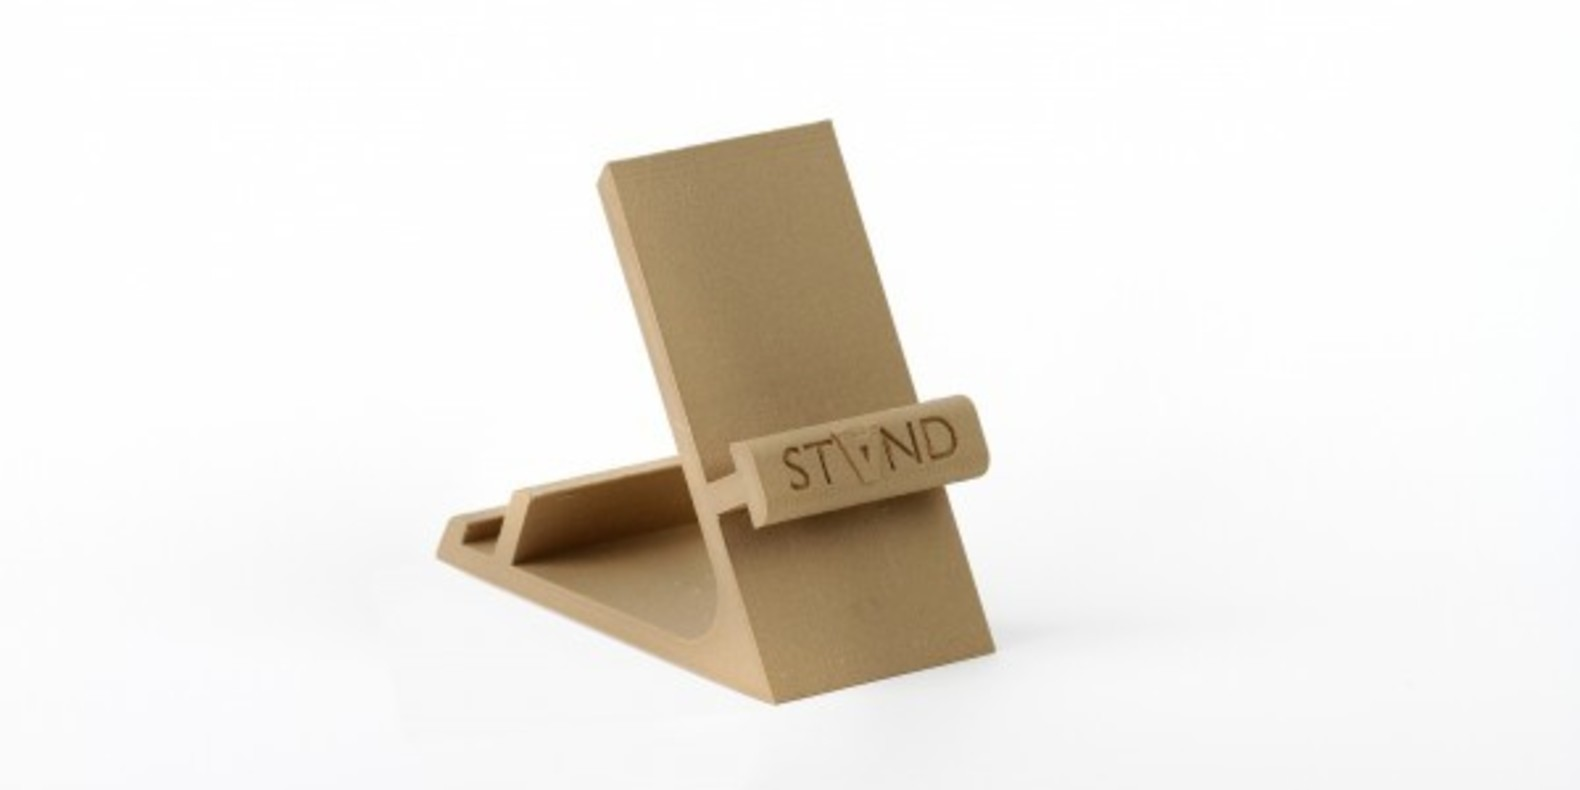 stand-iphone-holder-support-smartphone-imprimé-en-3D-cults-2.jpg